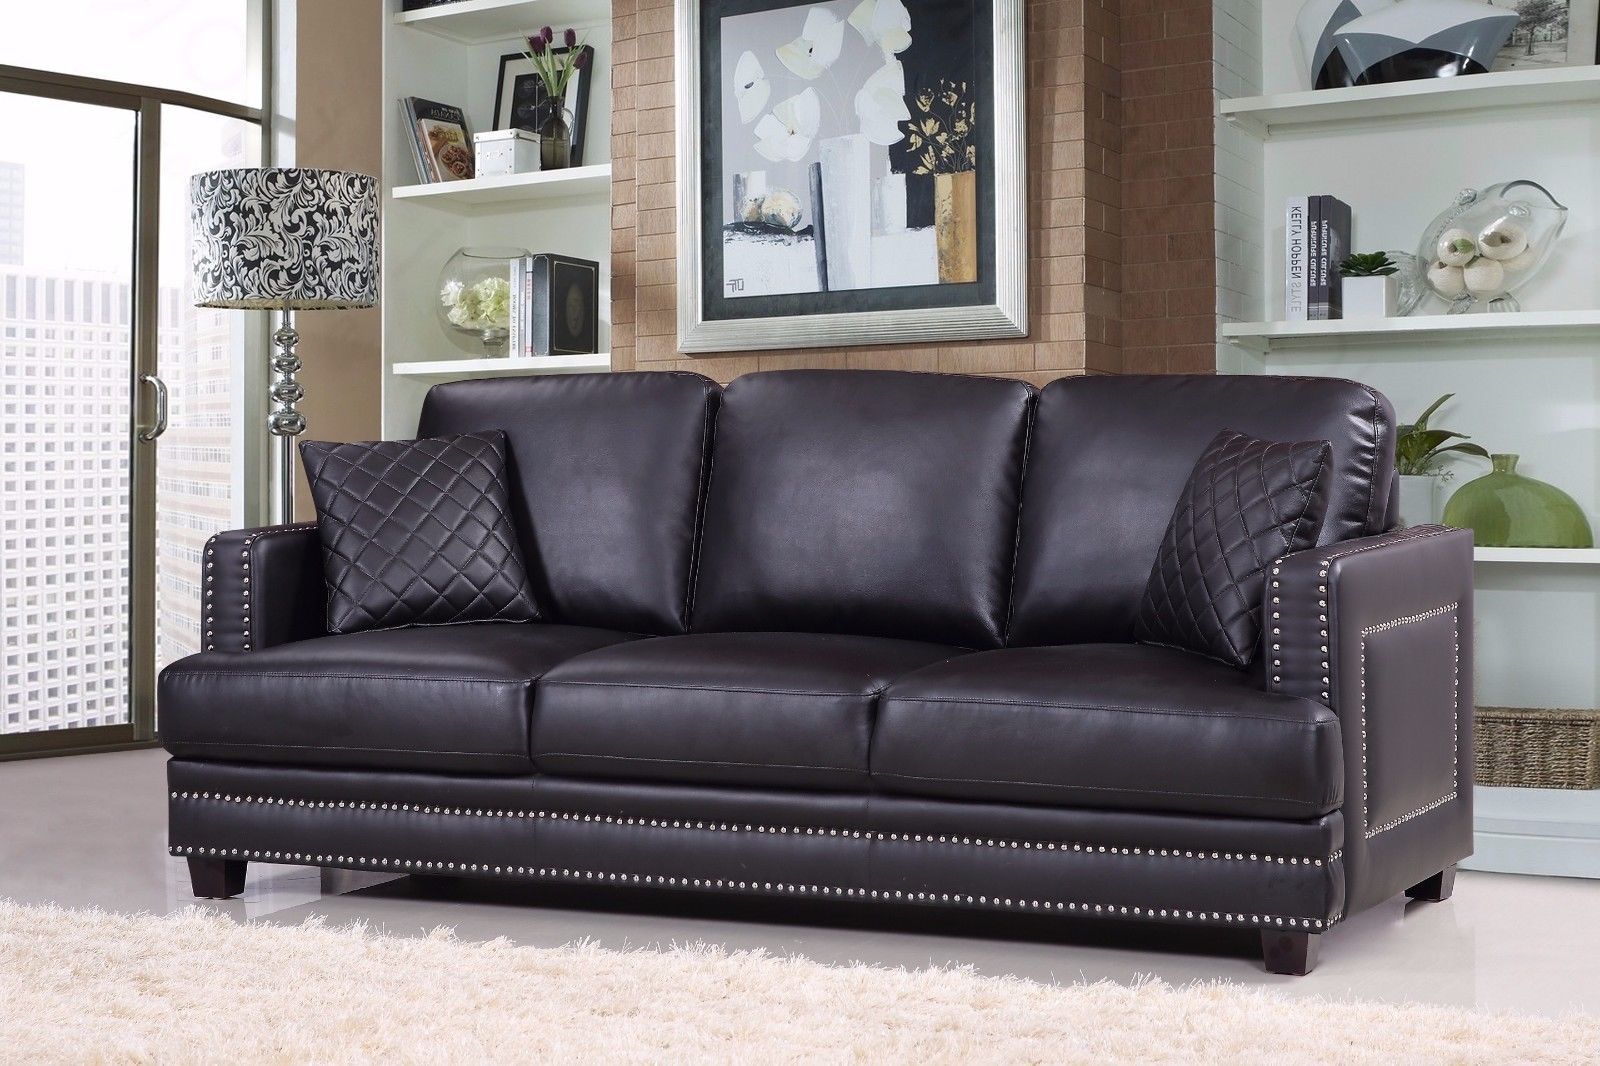 Meridian 655 Bonded Leather Living Room Sofa Black Contemporary Style